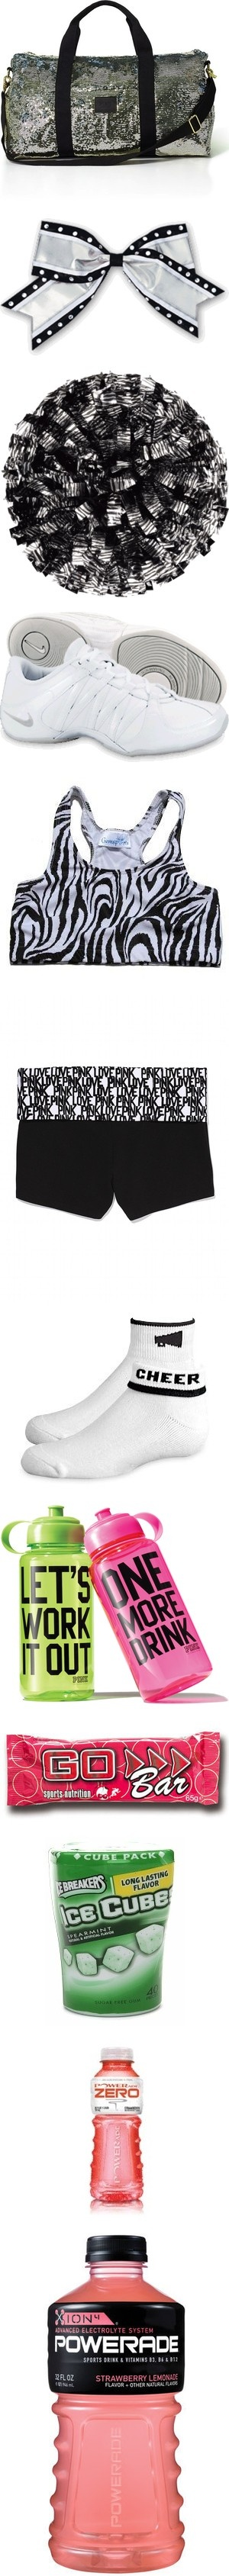 """""""cheer bag"""" by keikei1992 ❤ liked on Polyvore, I 100% want this sequinned bag, it's the perfect overnight bag!"""